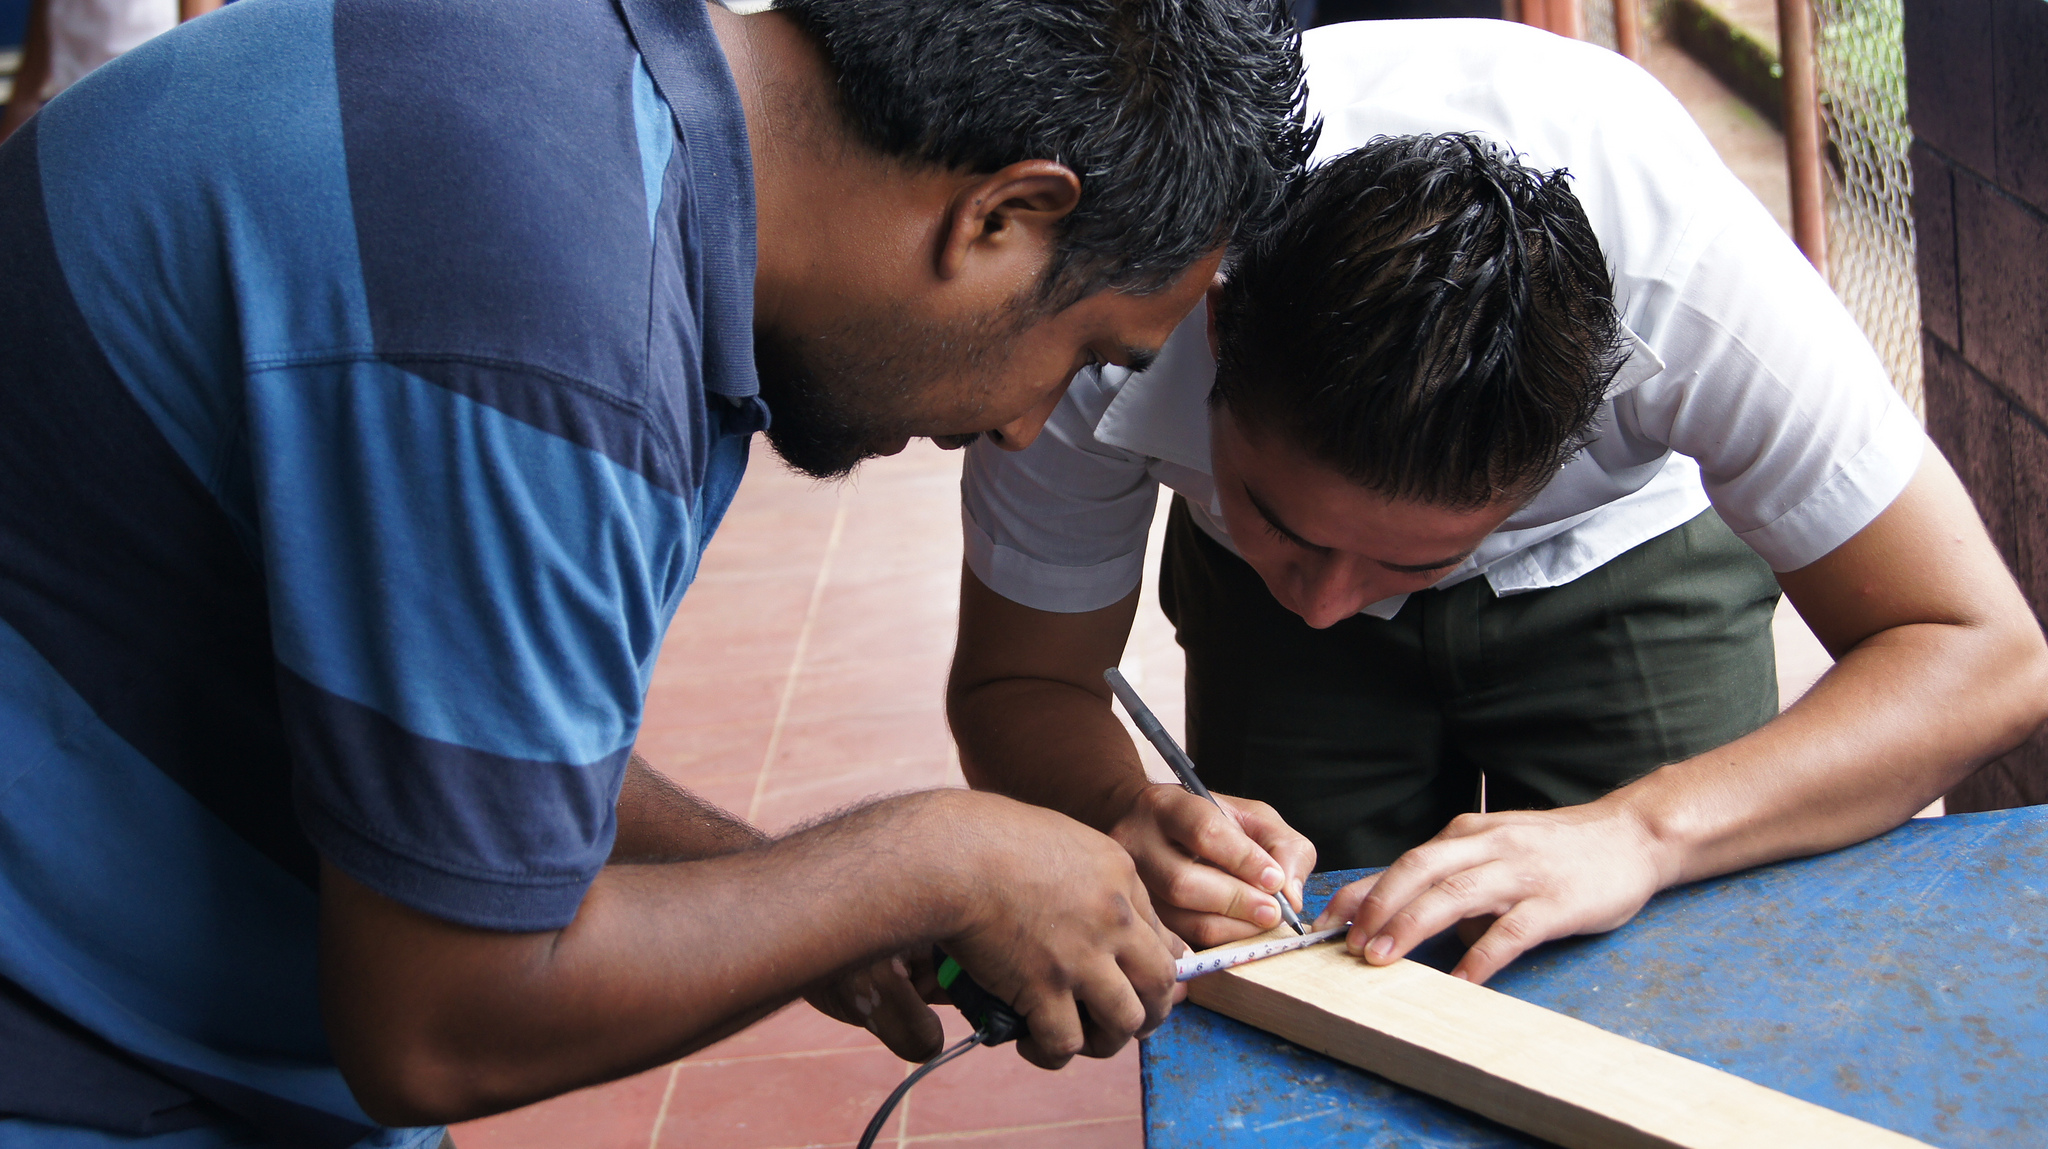 Rafael Reyes helped students create their own fret boards out of wood and simple materials so that they could practice at home.